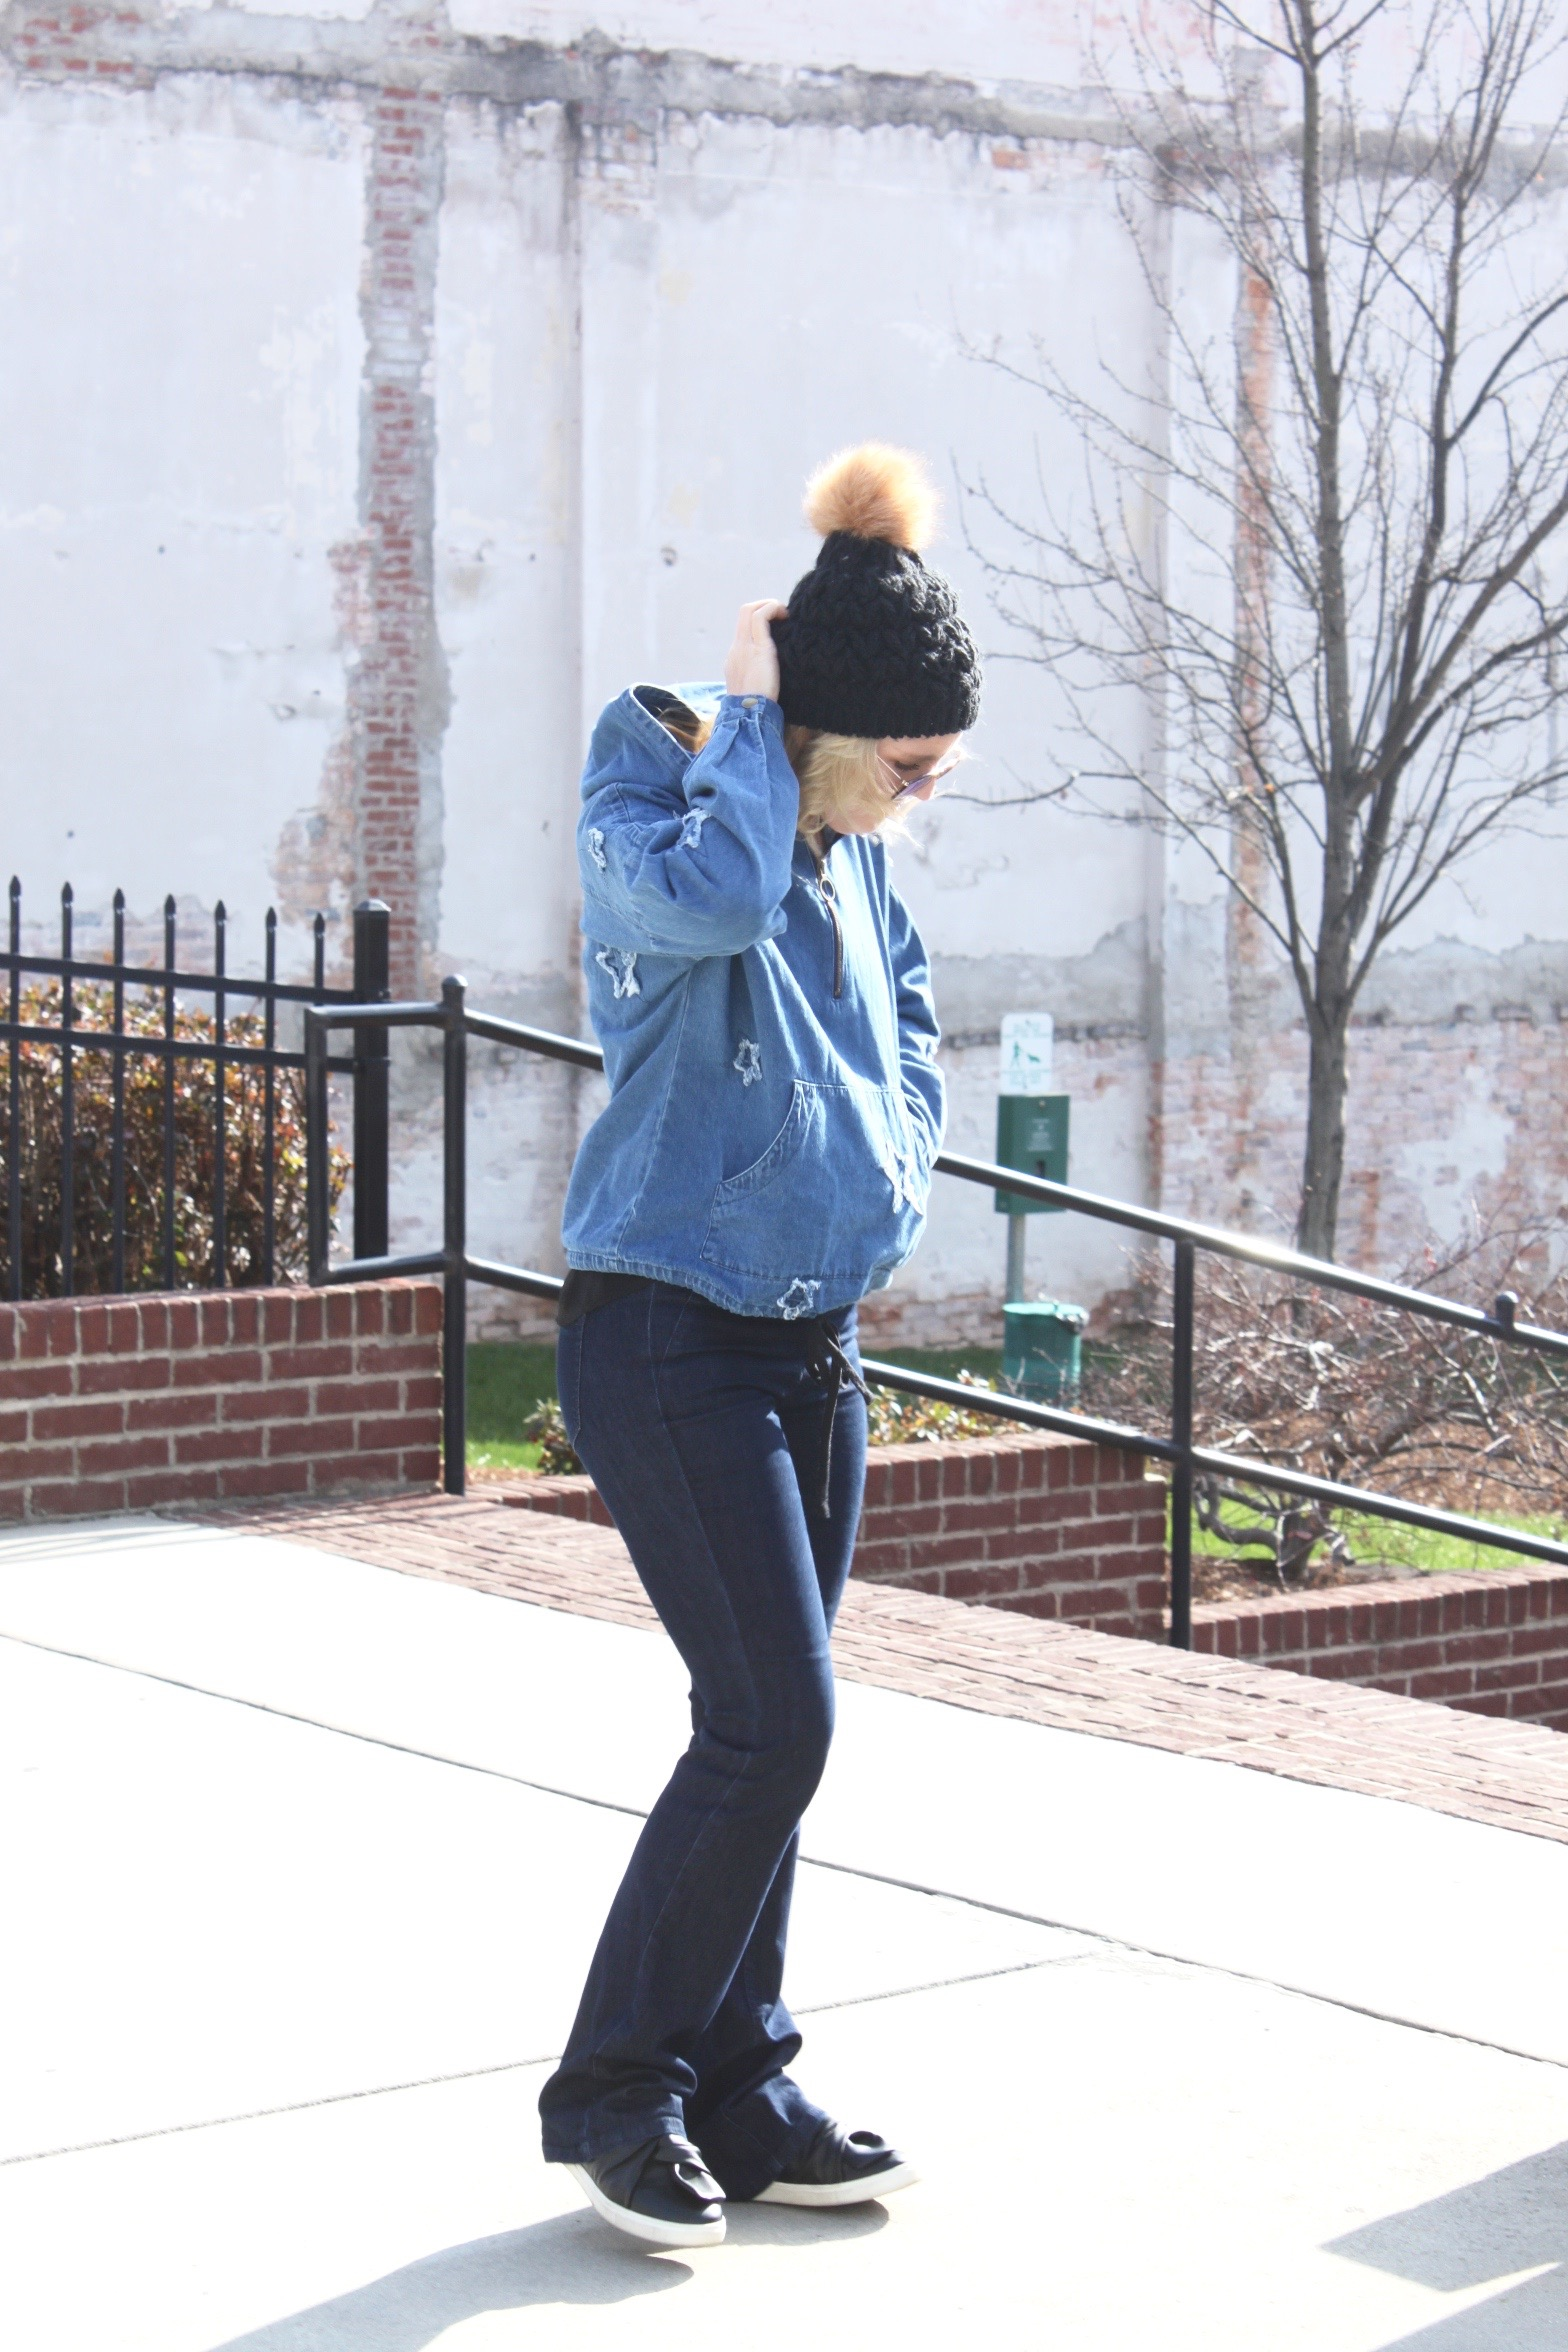 Denim star jacket and beanie casual look every day style